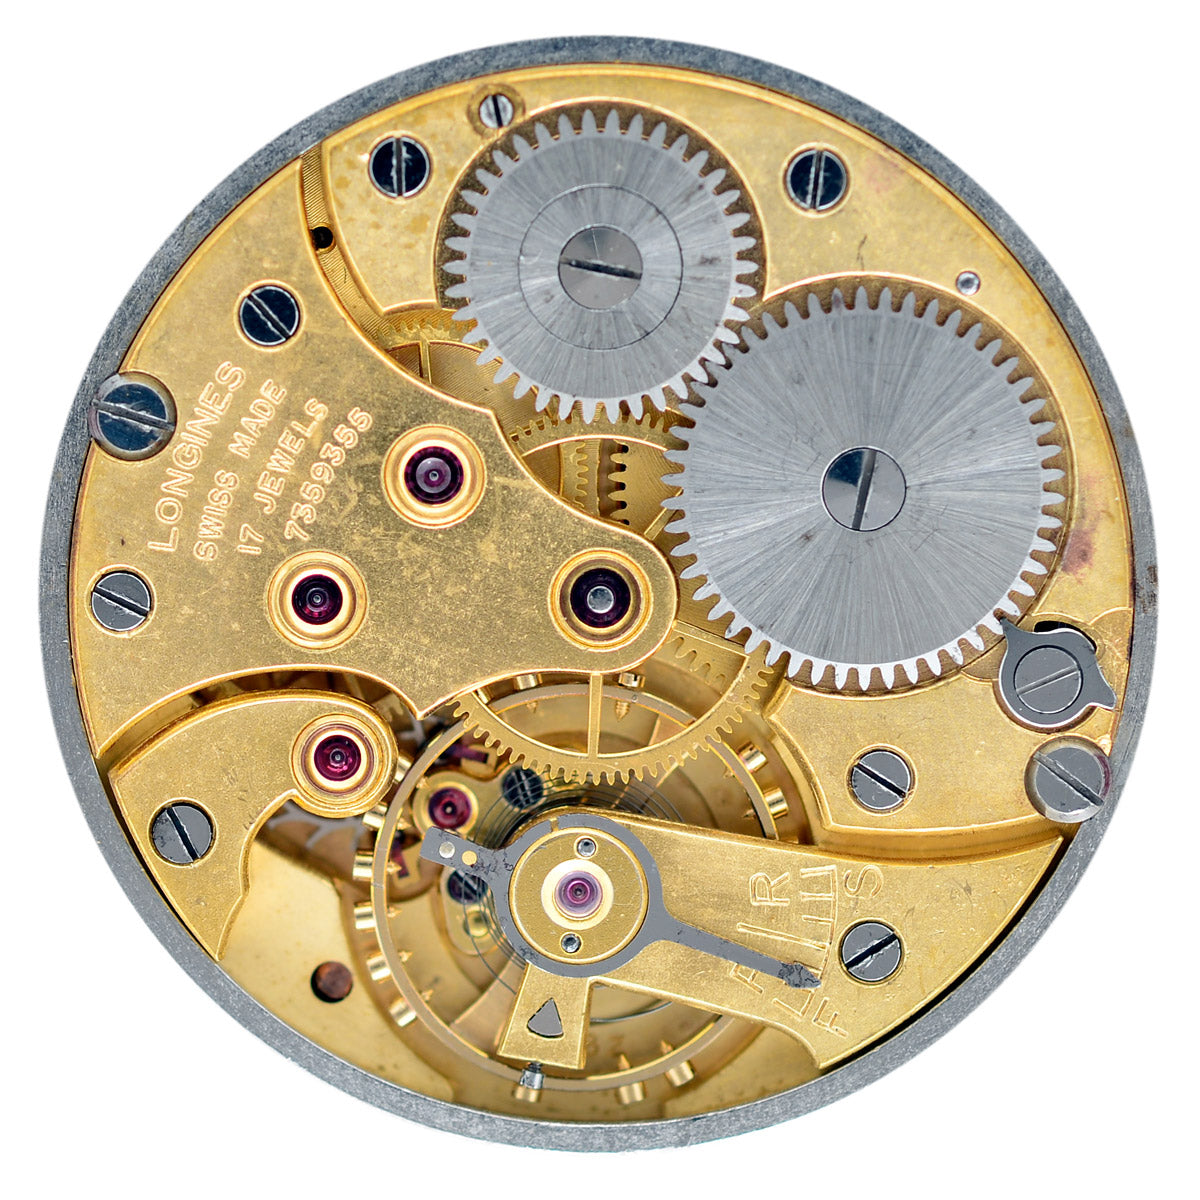 1940's vintage Longines movement